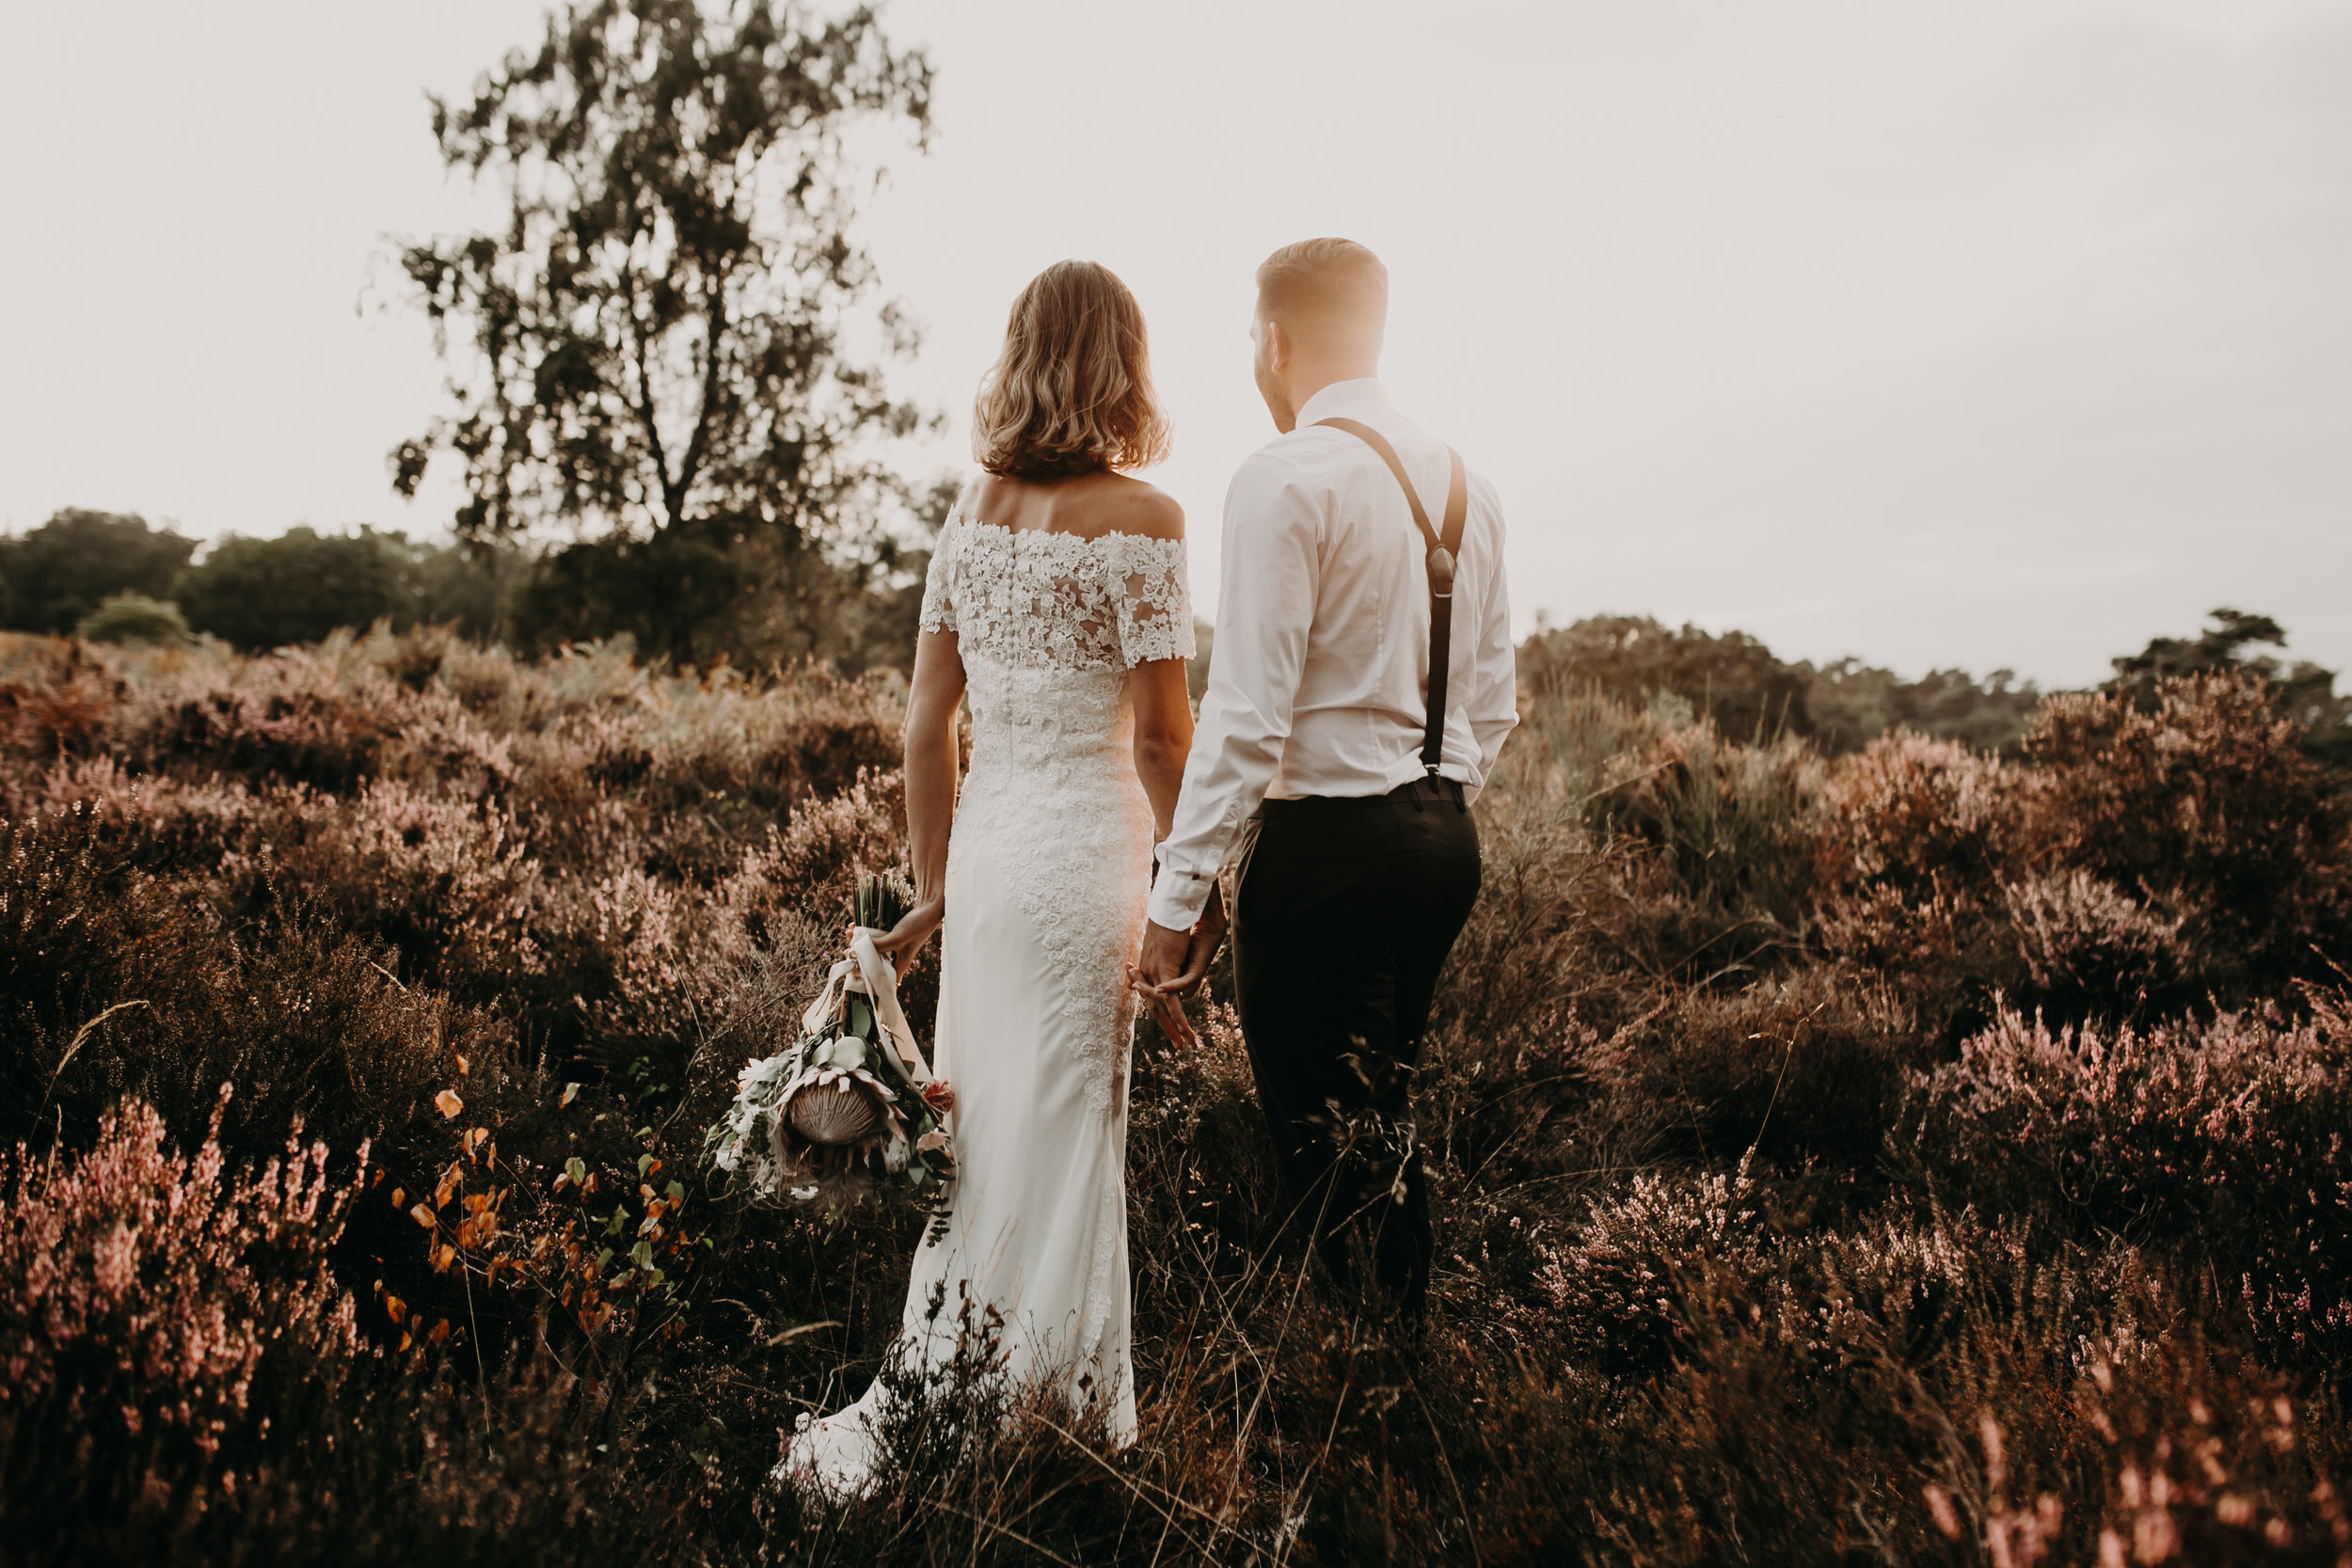 163After Wedding Jacky + Paddy August 2018.jpg